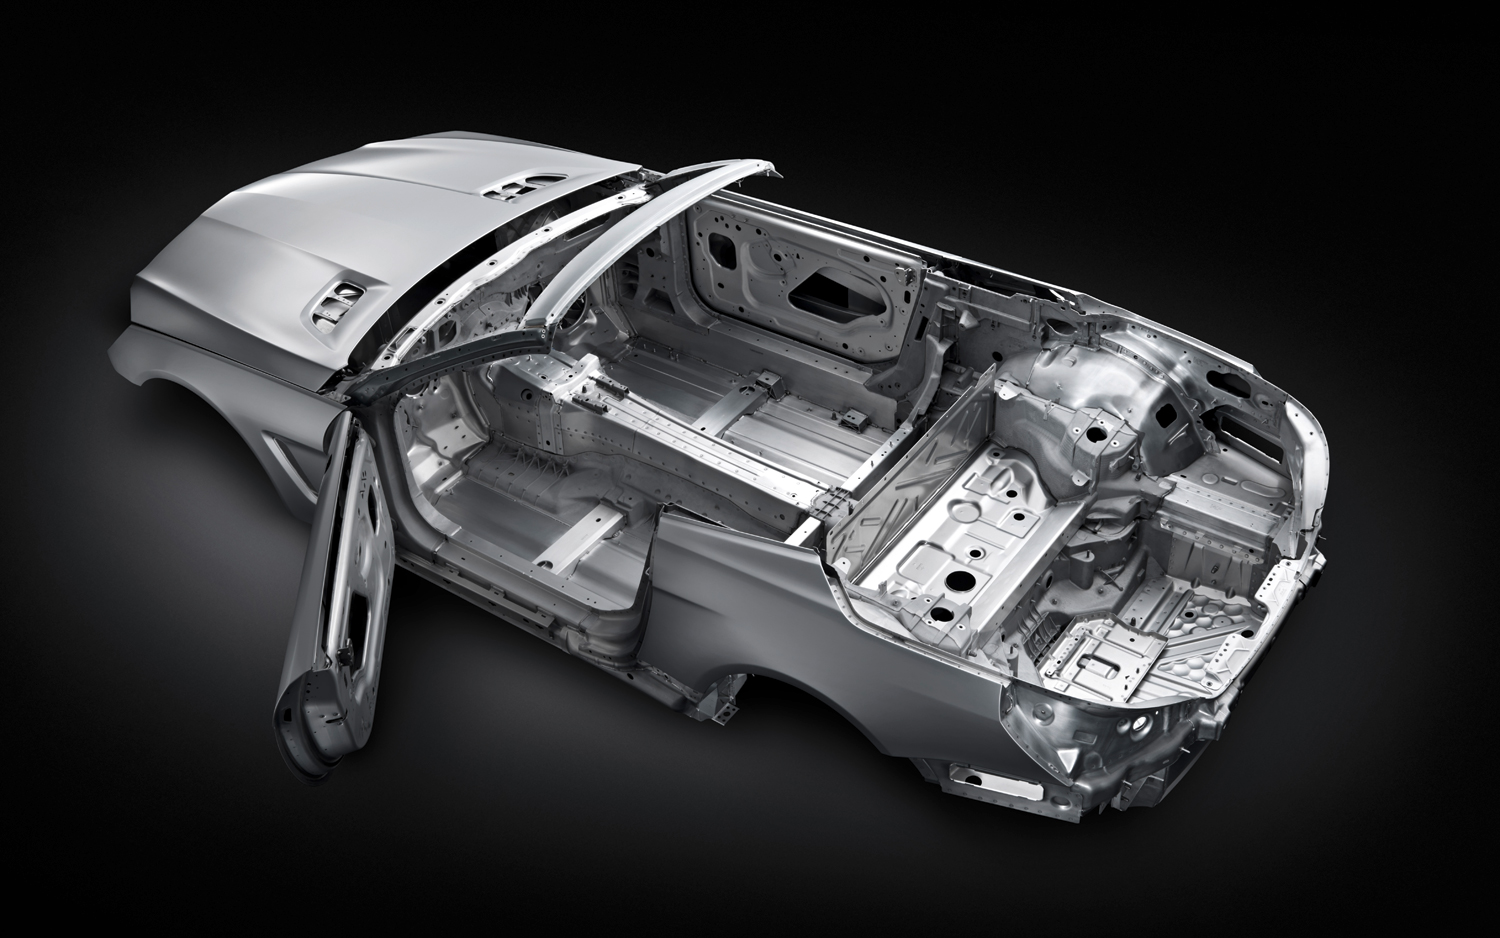 2013 Mercedes SL550 chassis and body constructed from aluminum save 300 lbs over the previous version of the SL